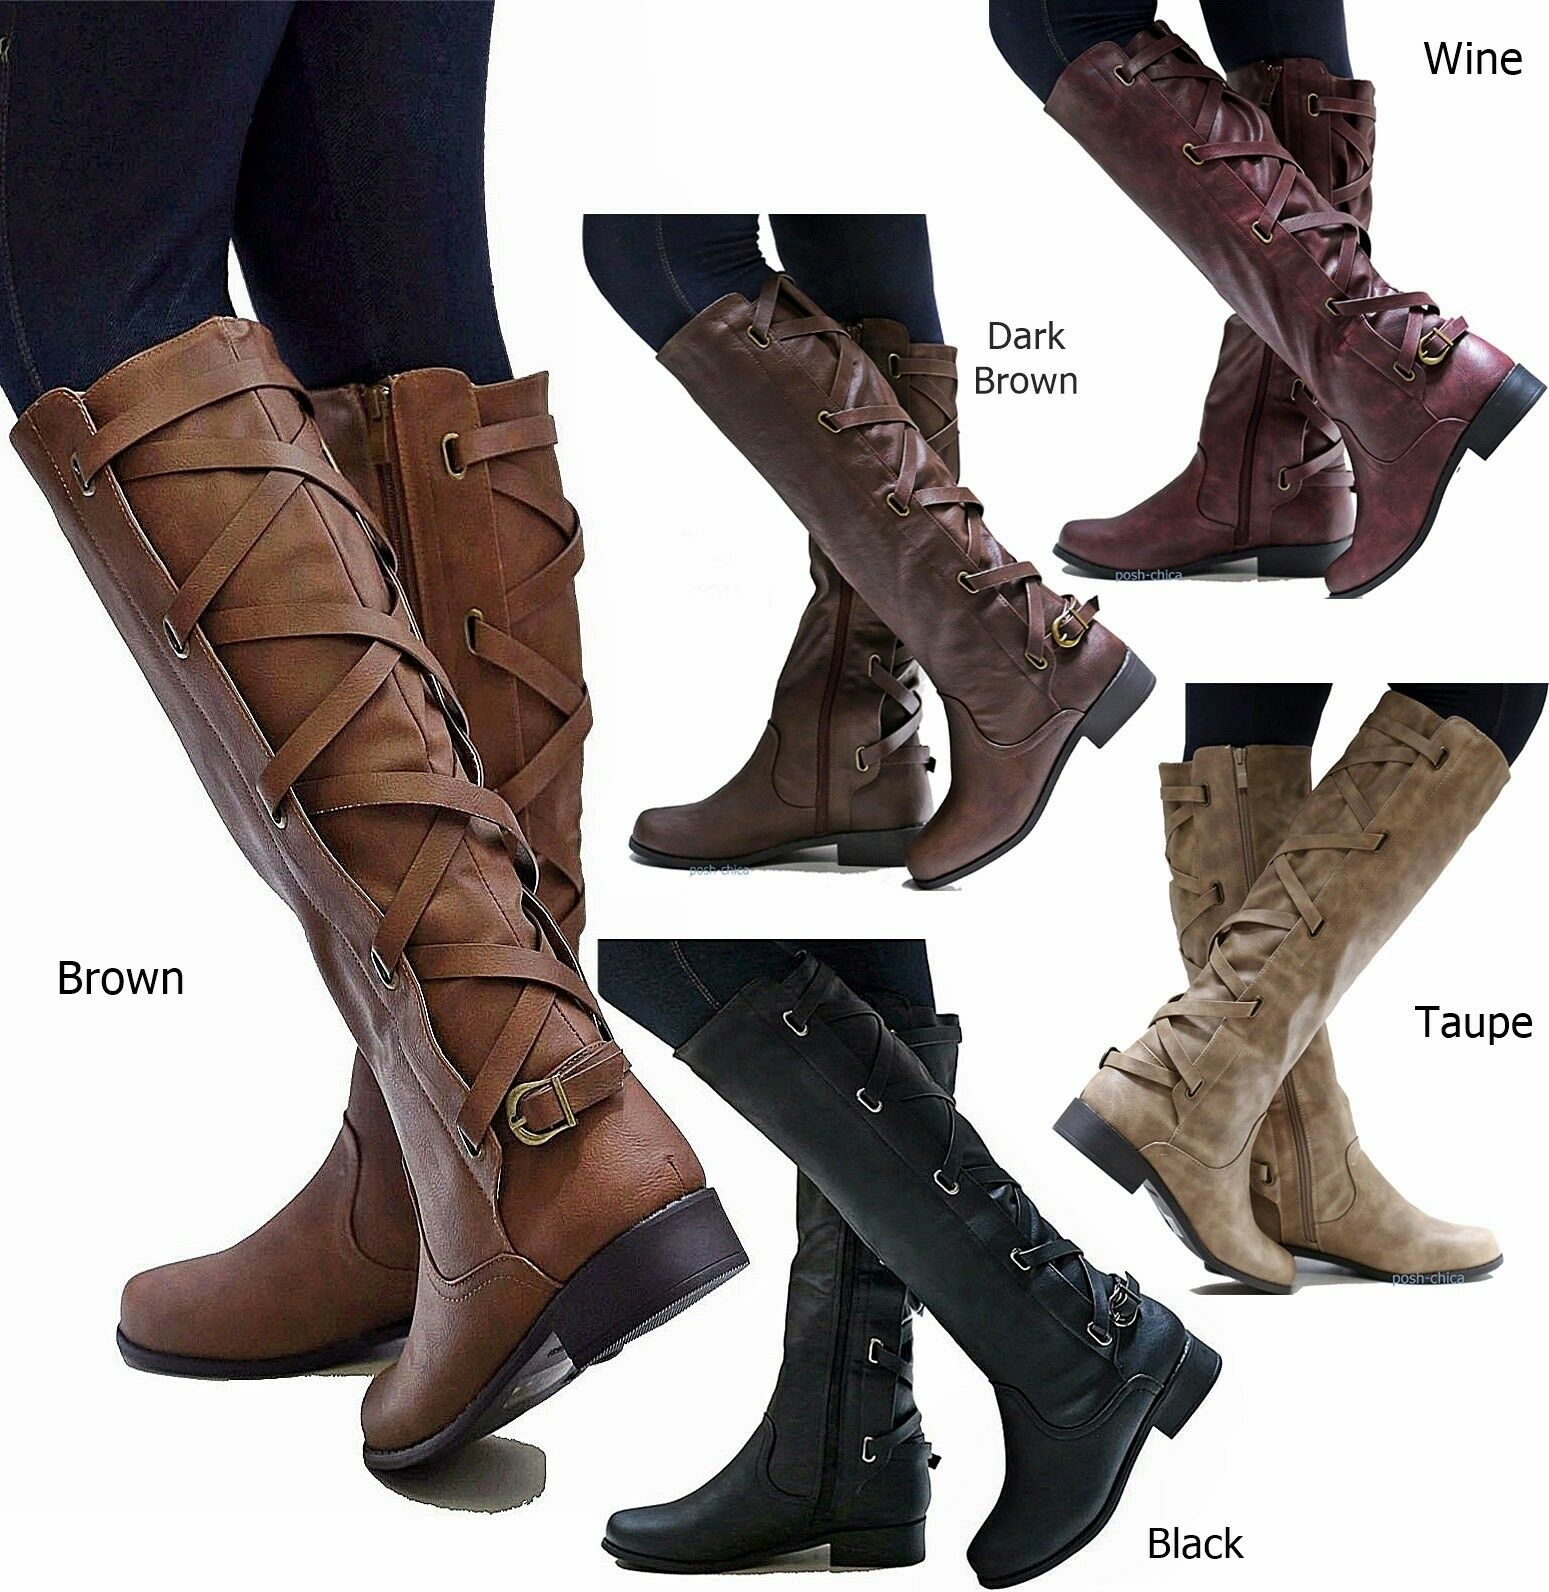 Boots - New Women PcH Brown Black Buckle Riding Knee High Cowboy Boots 5.5 to 11